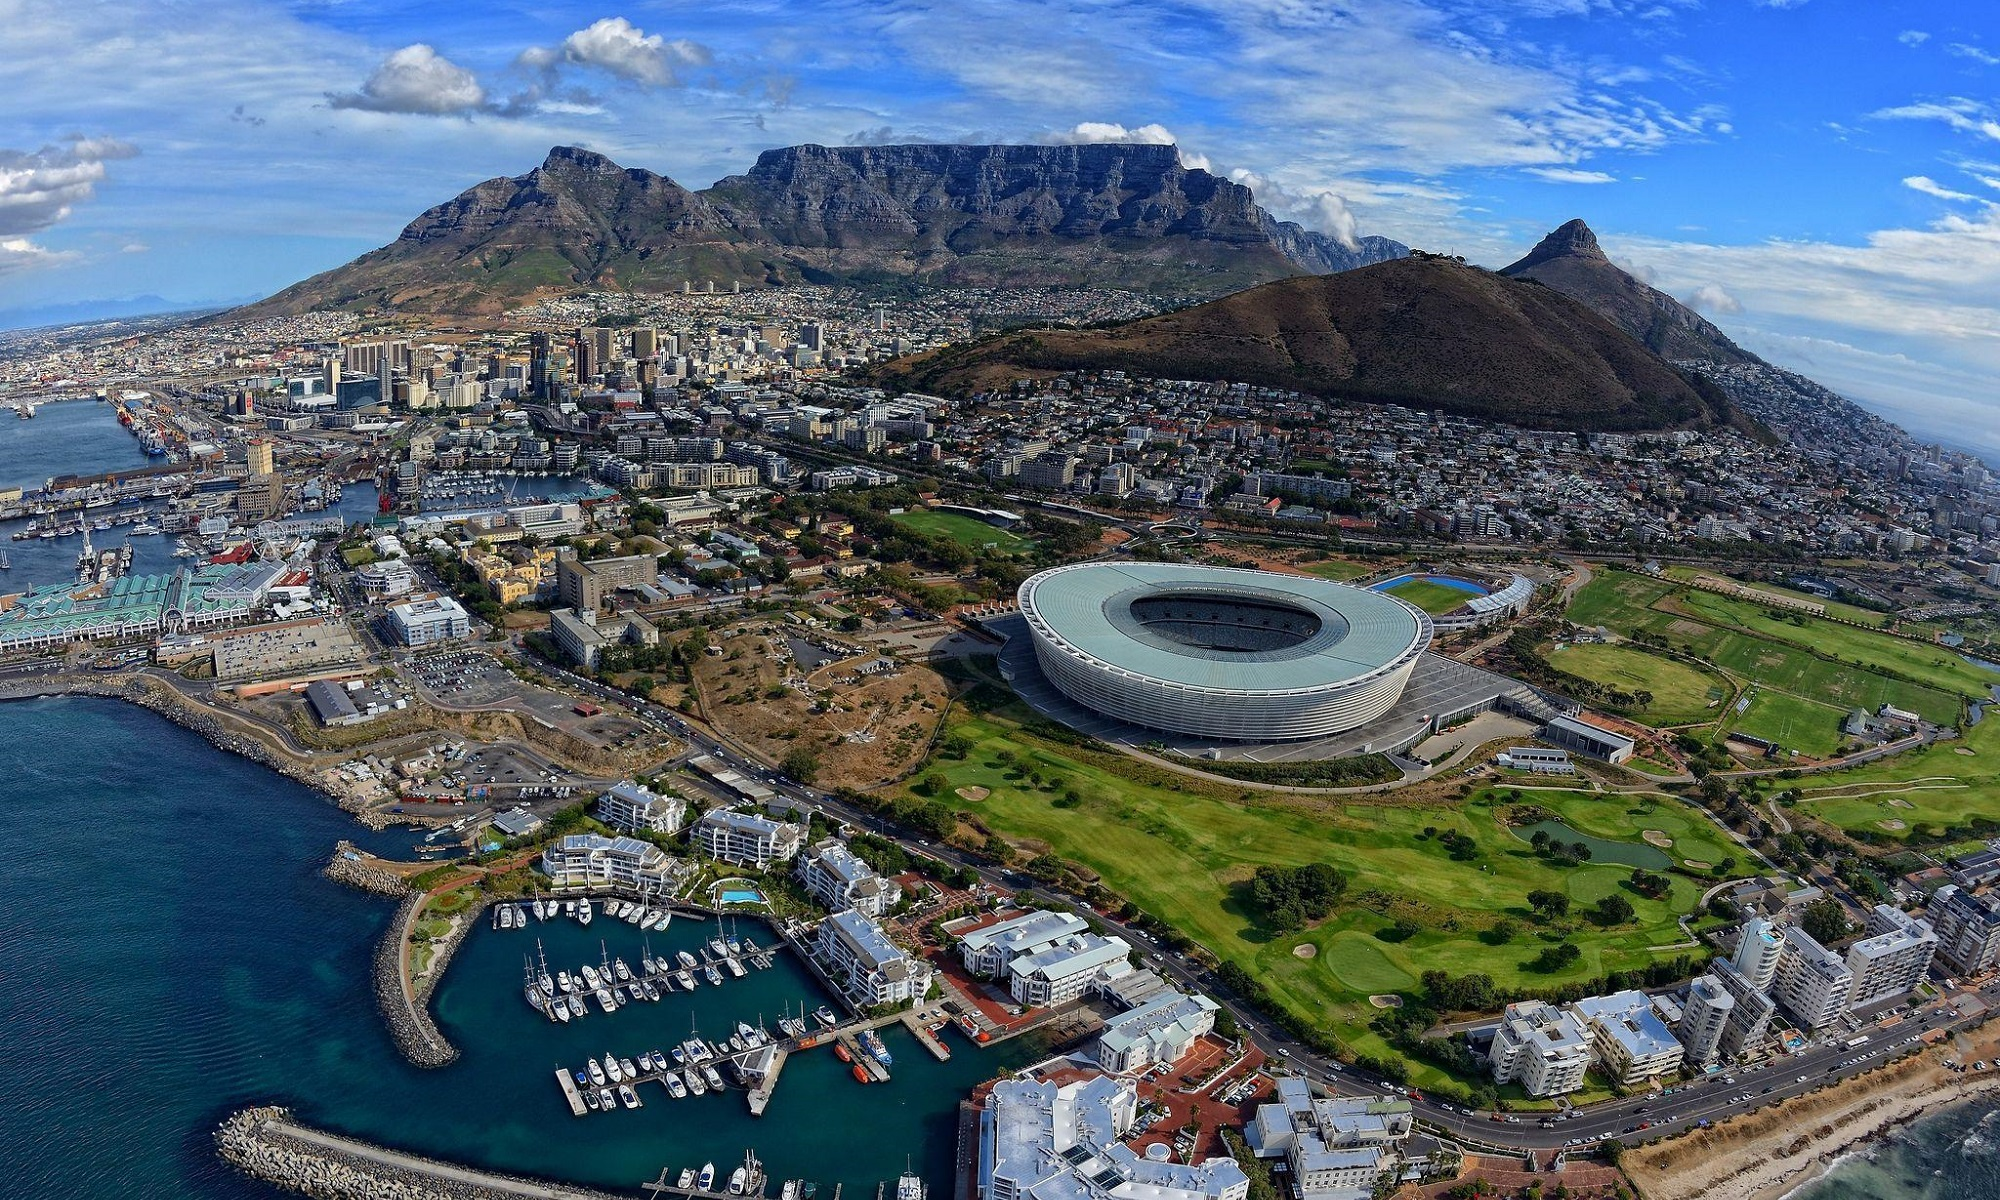 Aerial view of Capetown, South Africa.